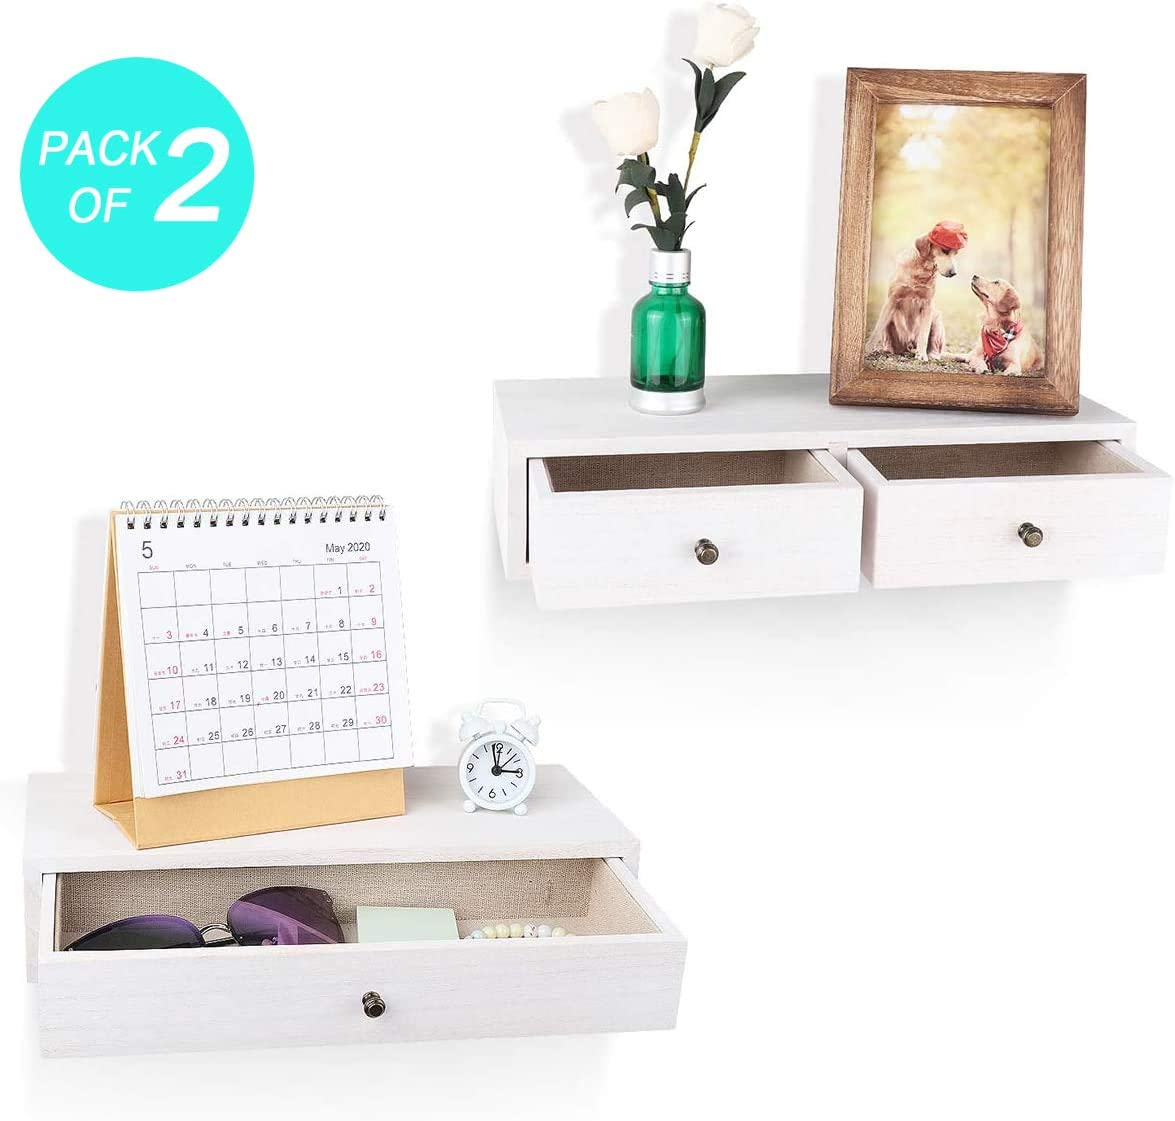 Emfogo Floating Shelf with Drawer Small Rustic Wood Wall Shelves for Storage and Display Multiuse Shelf Pack of 2 (White)